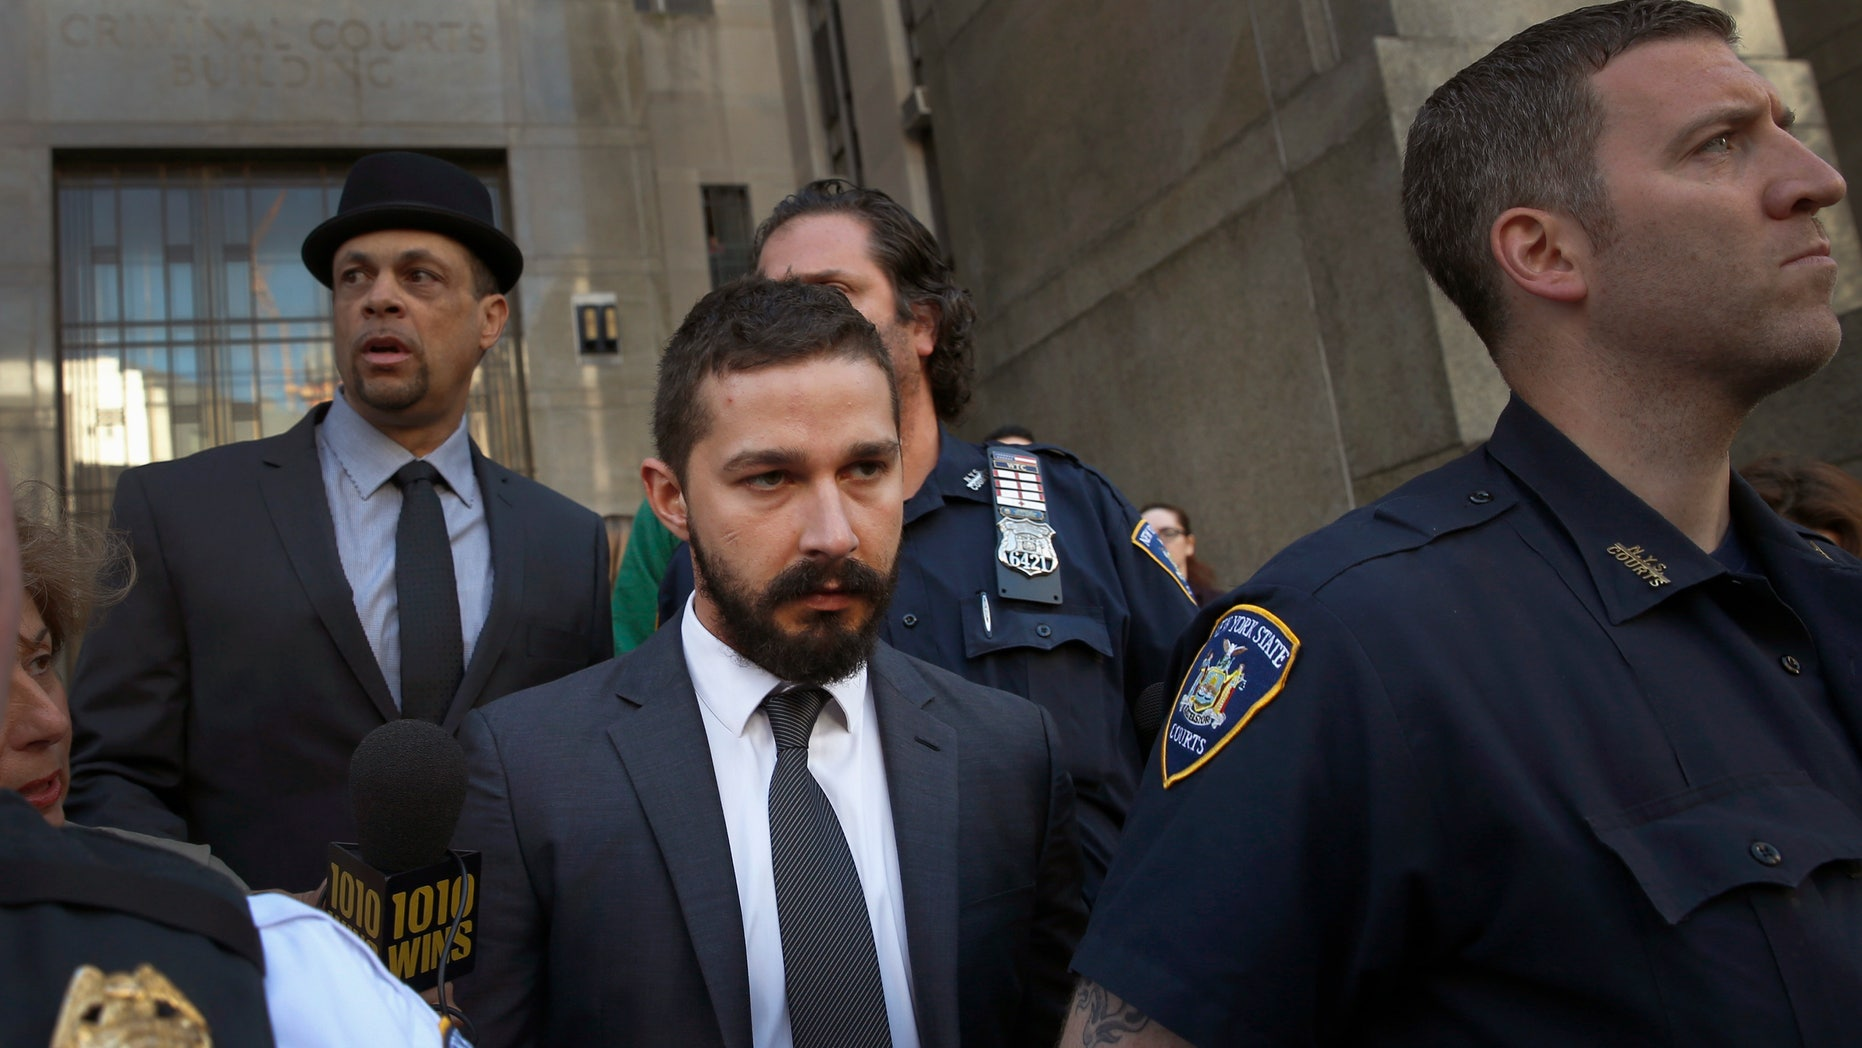 September 10, 2014. Actor Shia LaBeouf departs Manhattan Criminal Court in New York after facing charges for disorderly conduct and harassment.